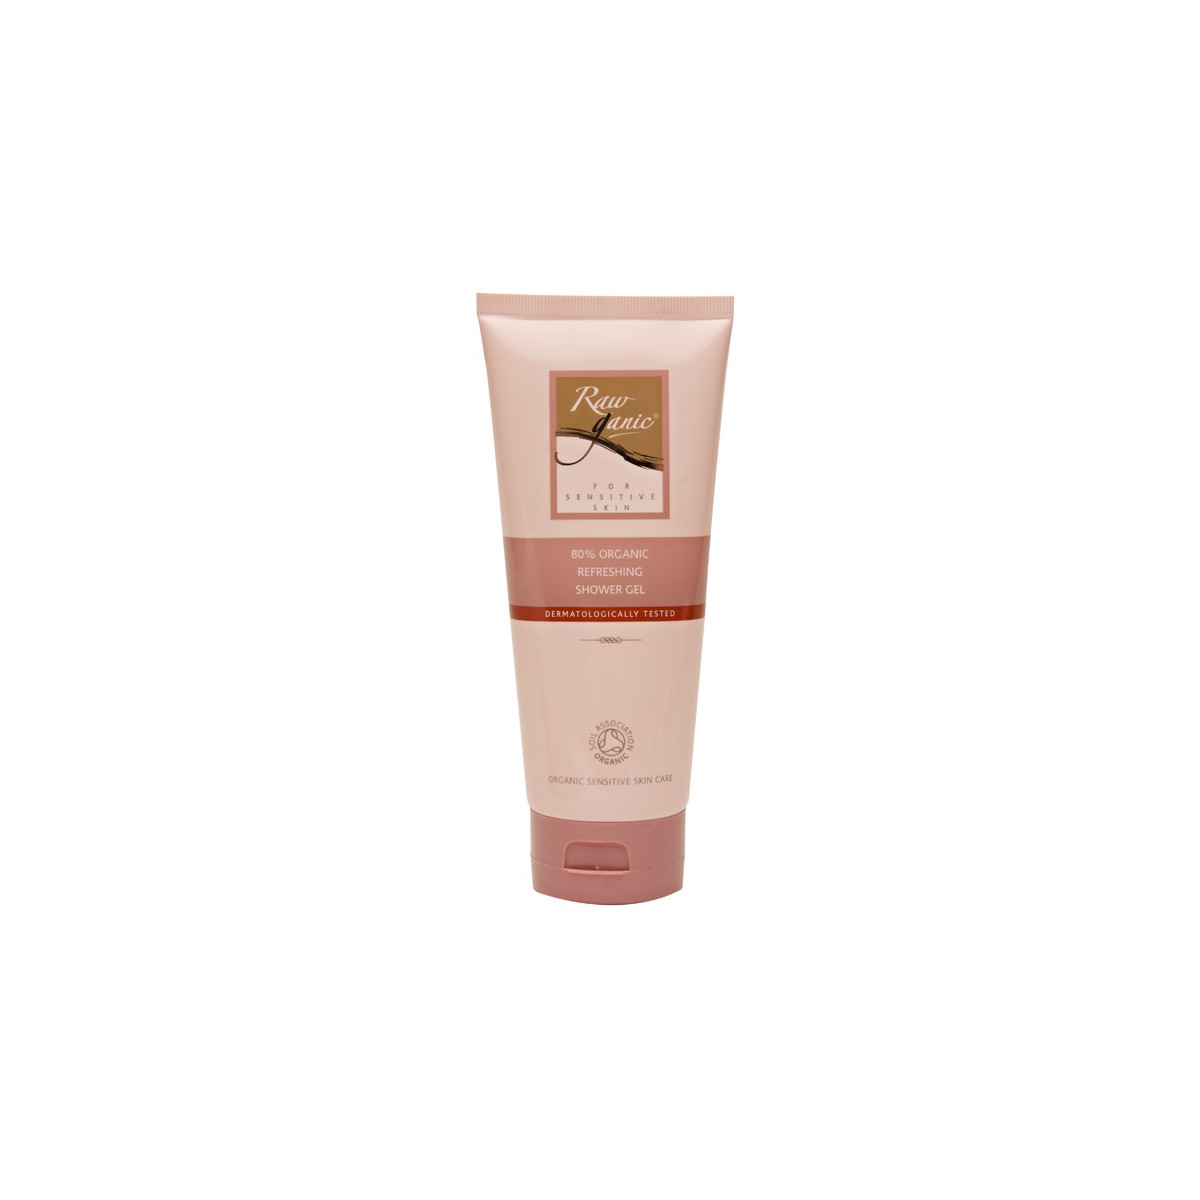 Gel de ducha piel sensible 200ml